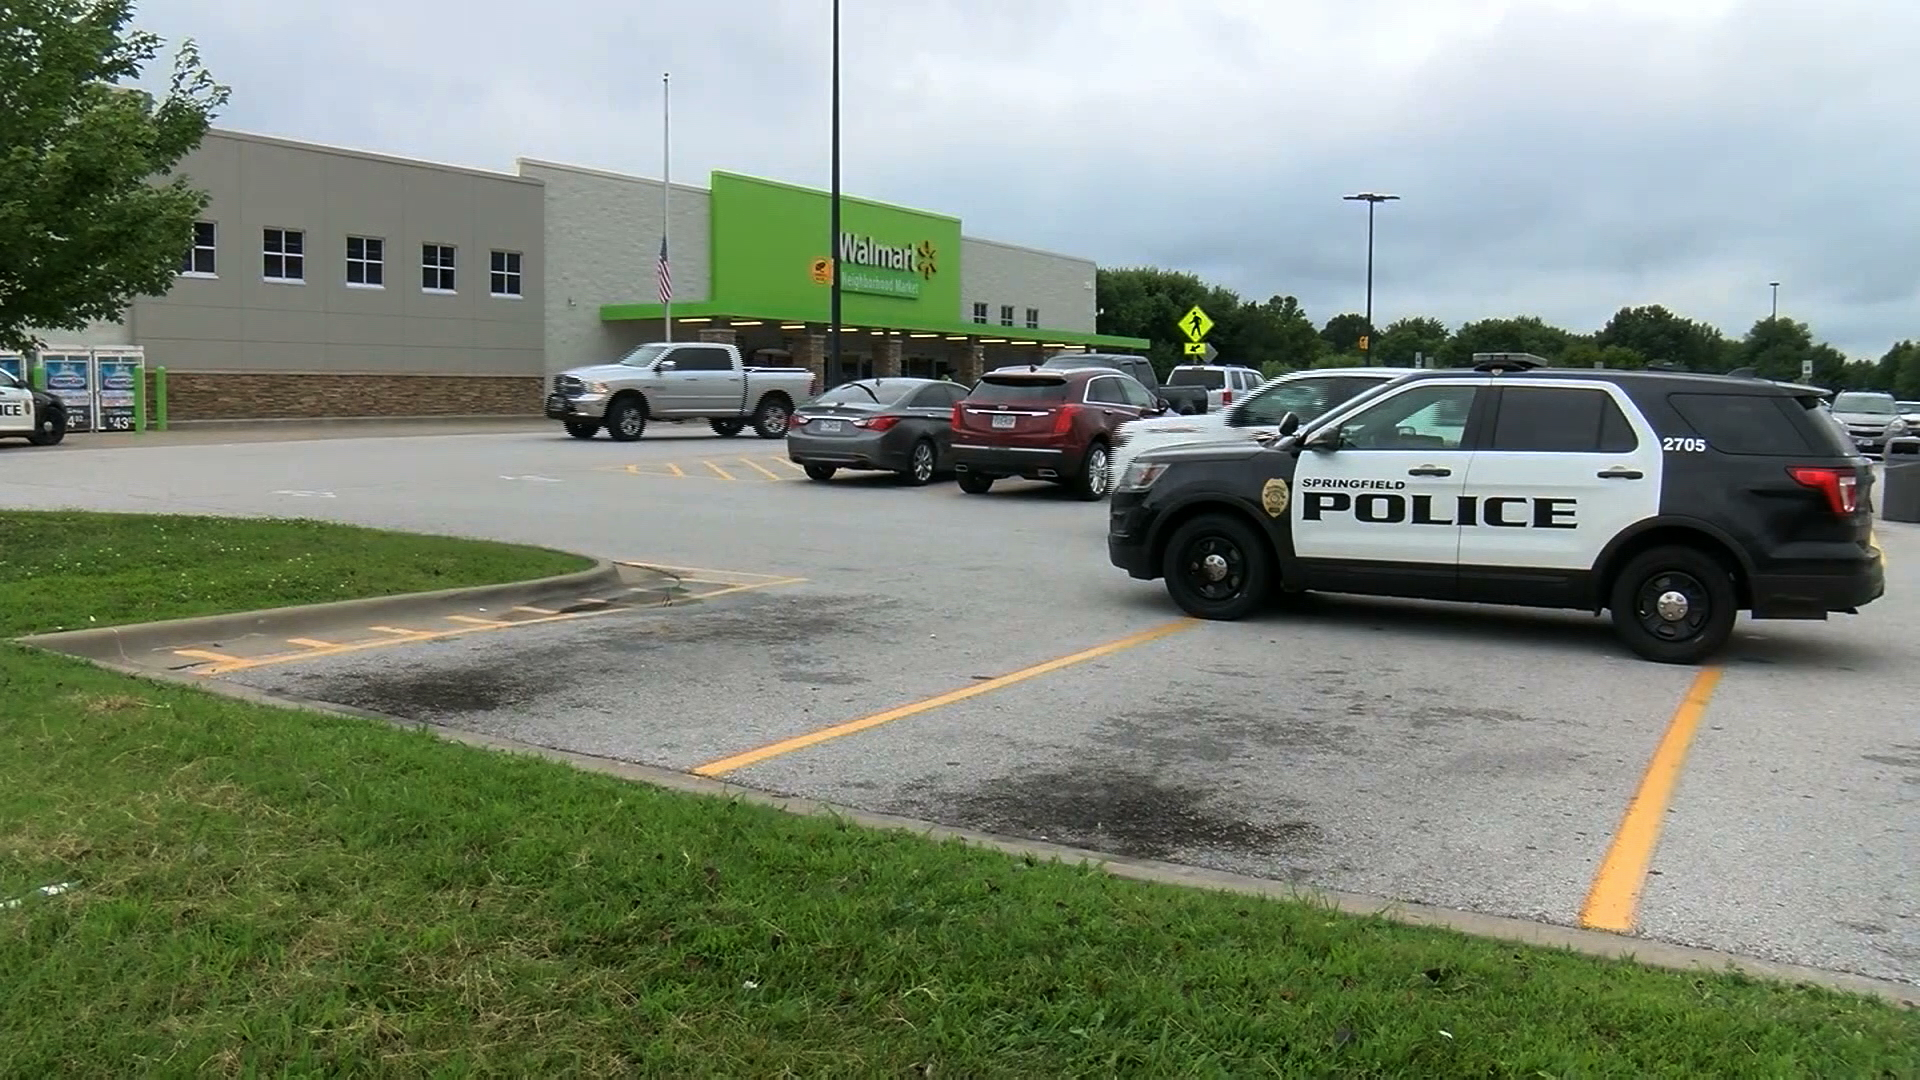 Police respond to a Walmart in Springfield, Missouri, where an armed man was arrested on Aug. 8, 2019. (Credit: KOLR via CNN)